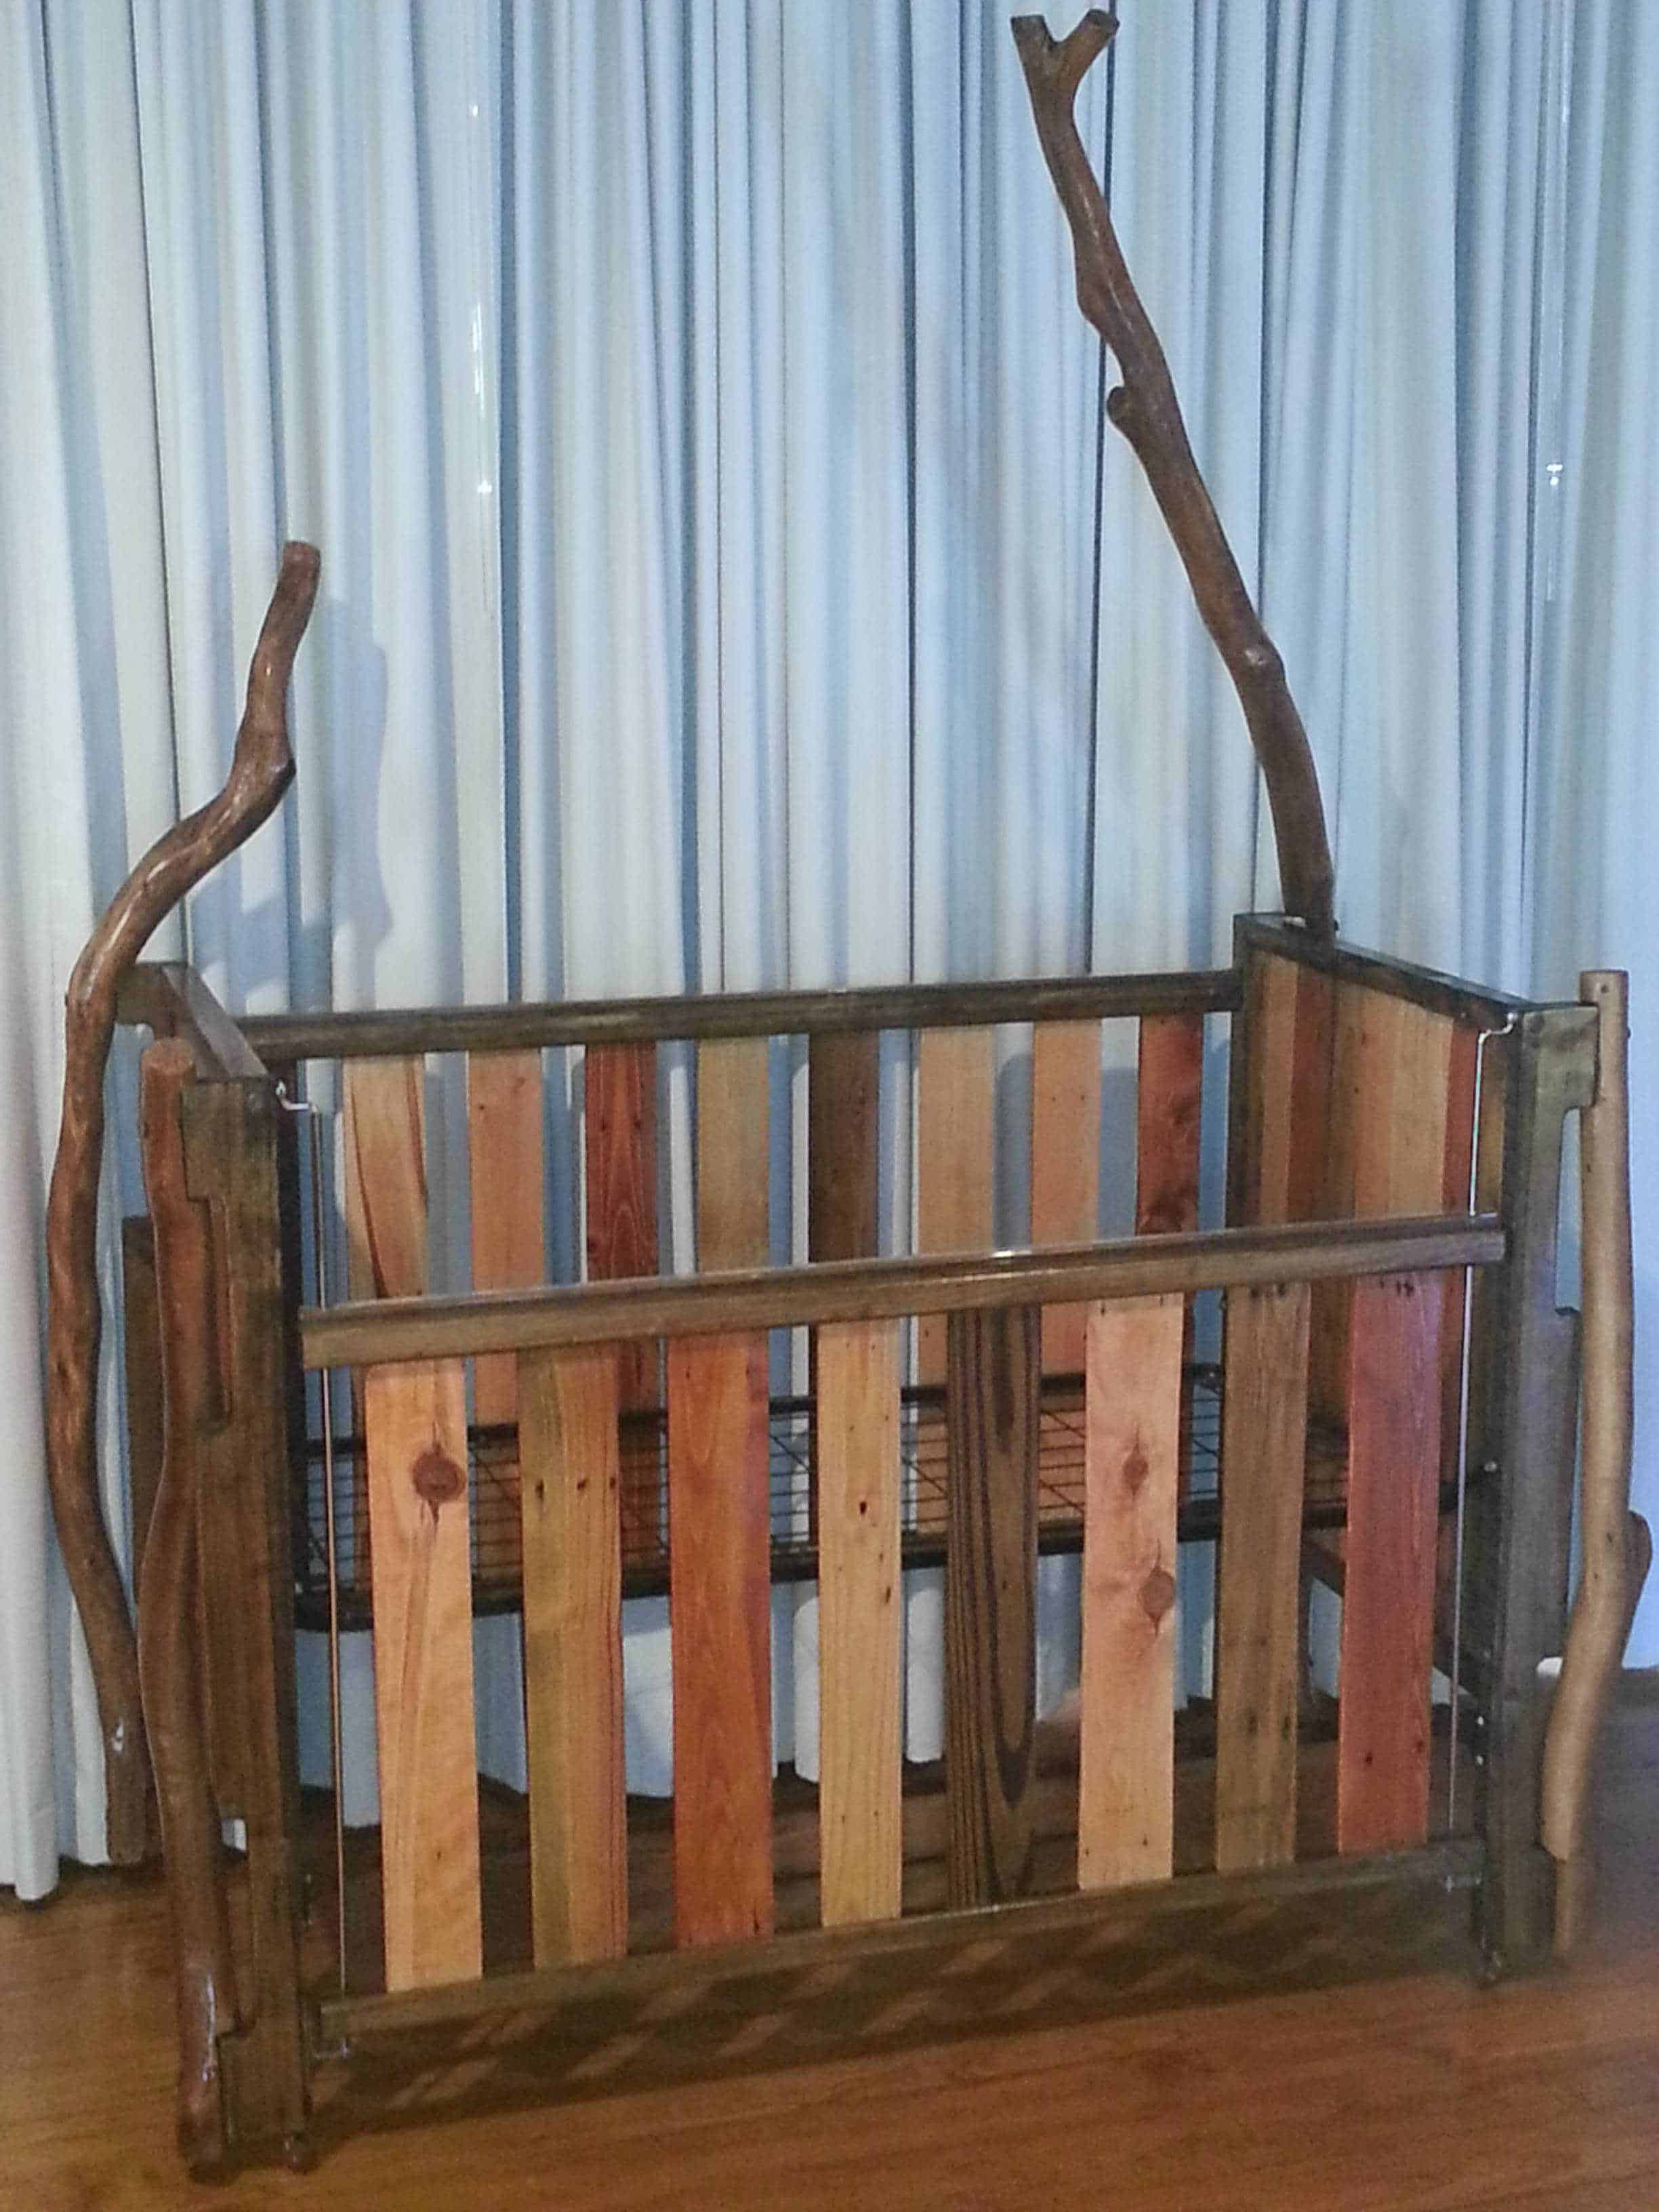 Pallet Crib • Pallet Ideas • 1001 Pallets